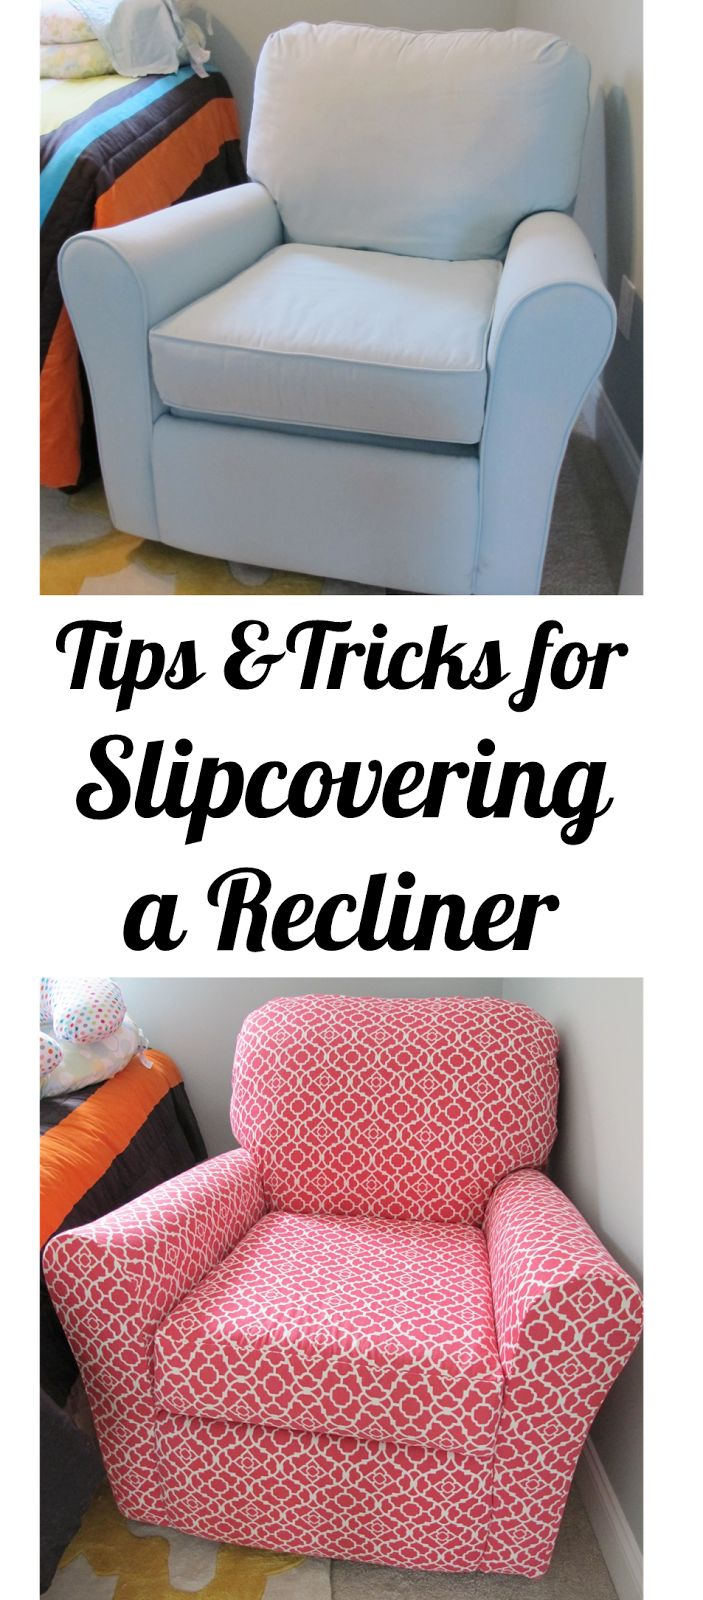 Armchair Cover Diy Hickory Chair Sideboard Bonnieprojects Tips Tricks For Slipcovering A Recliner Renovation Time Pinterest Reupholster Furniture And Slipcovers